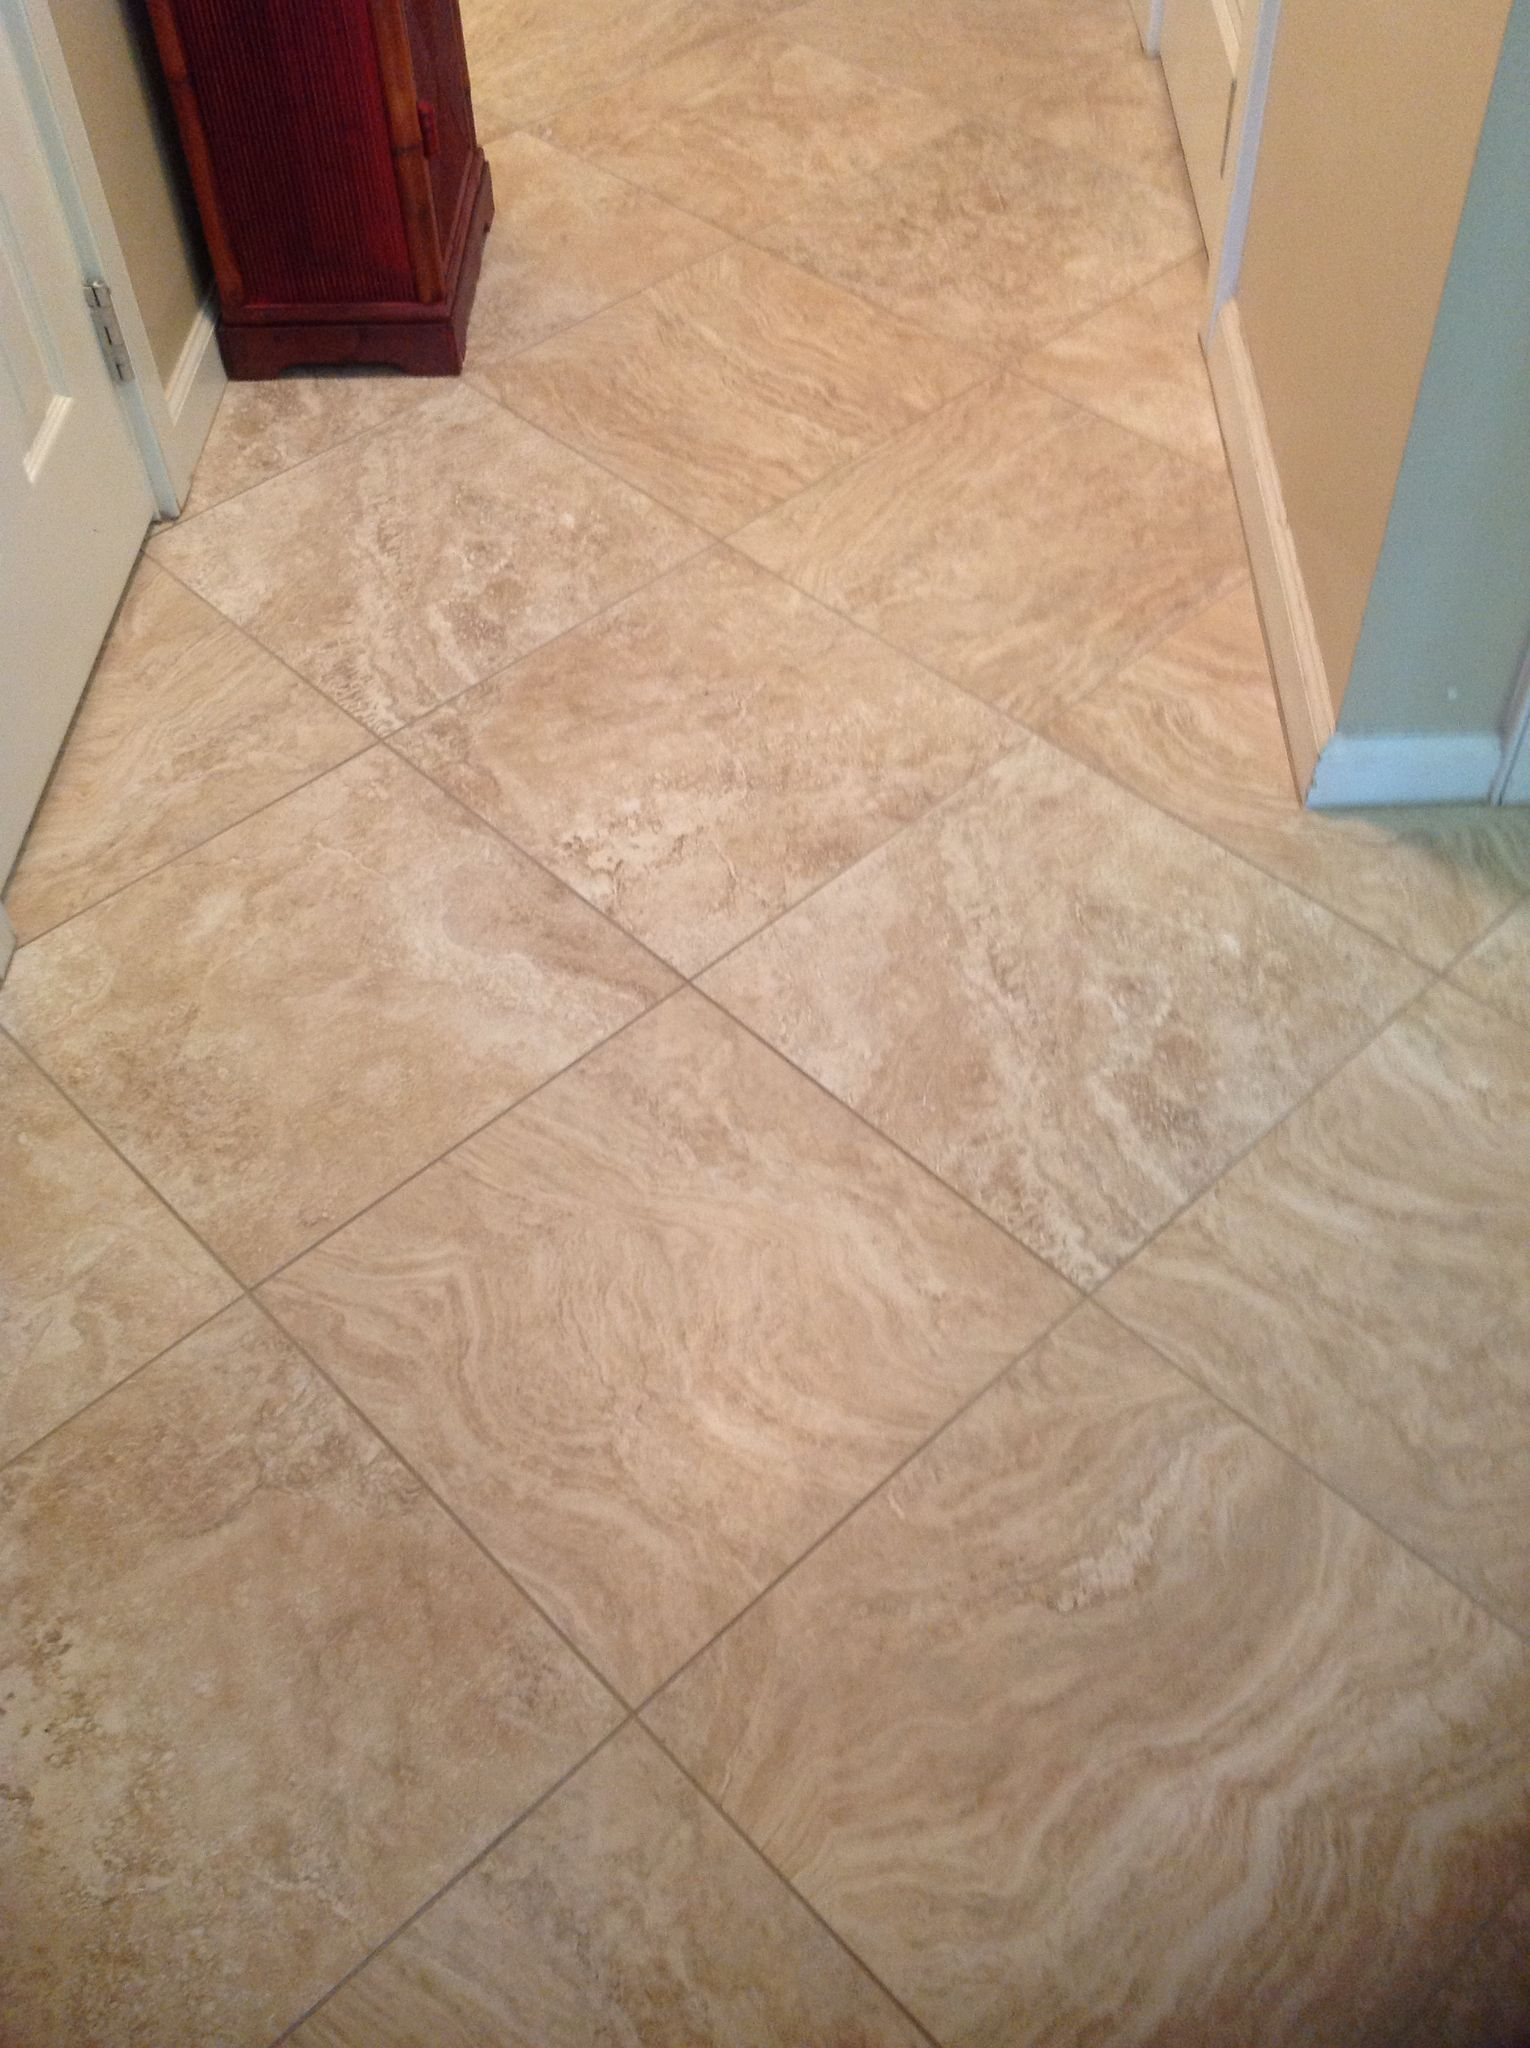 Keystone Fire 18 X 18 Diagonal Tile Projects Tile Floor Flooring